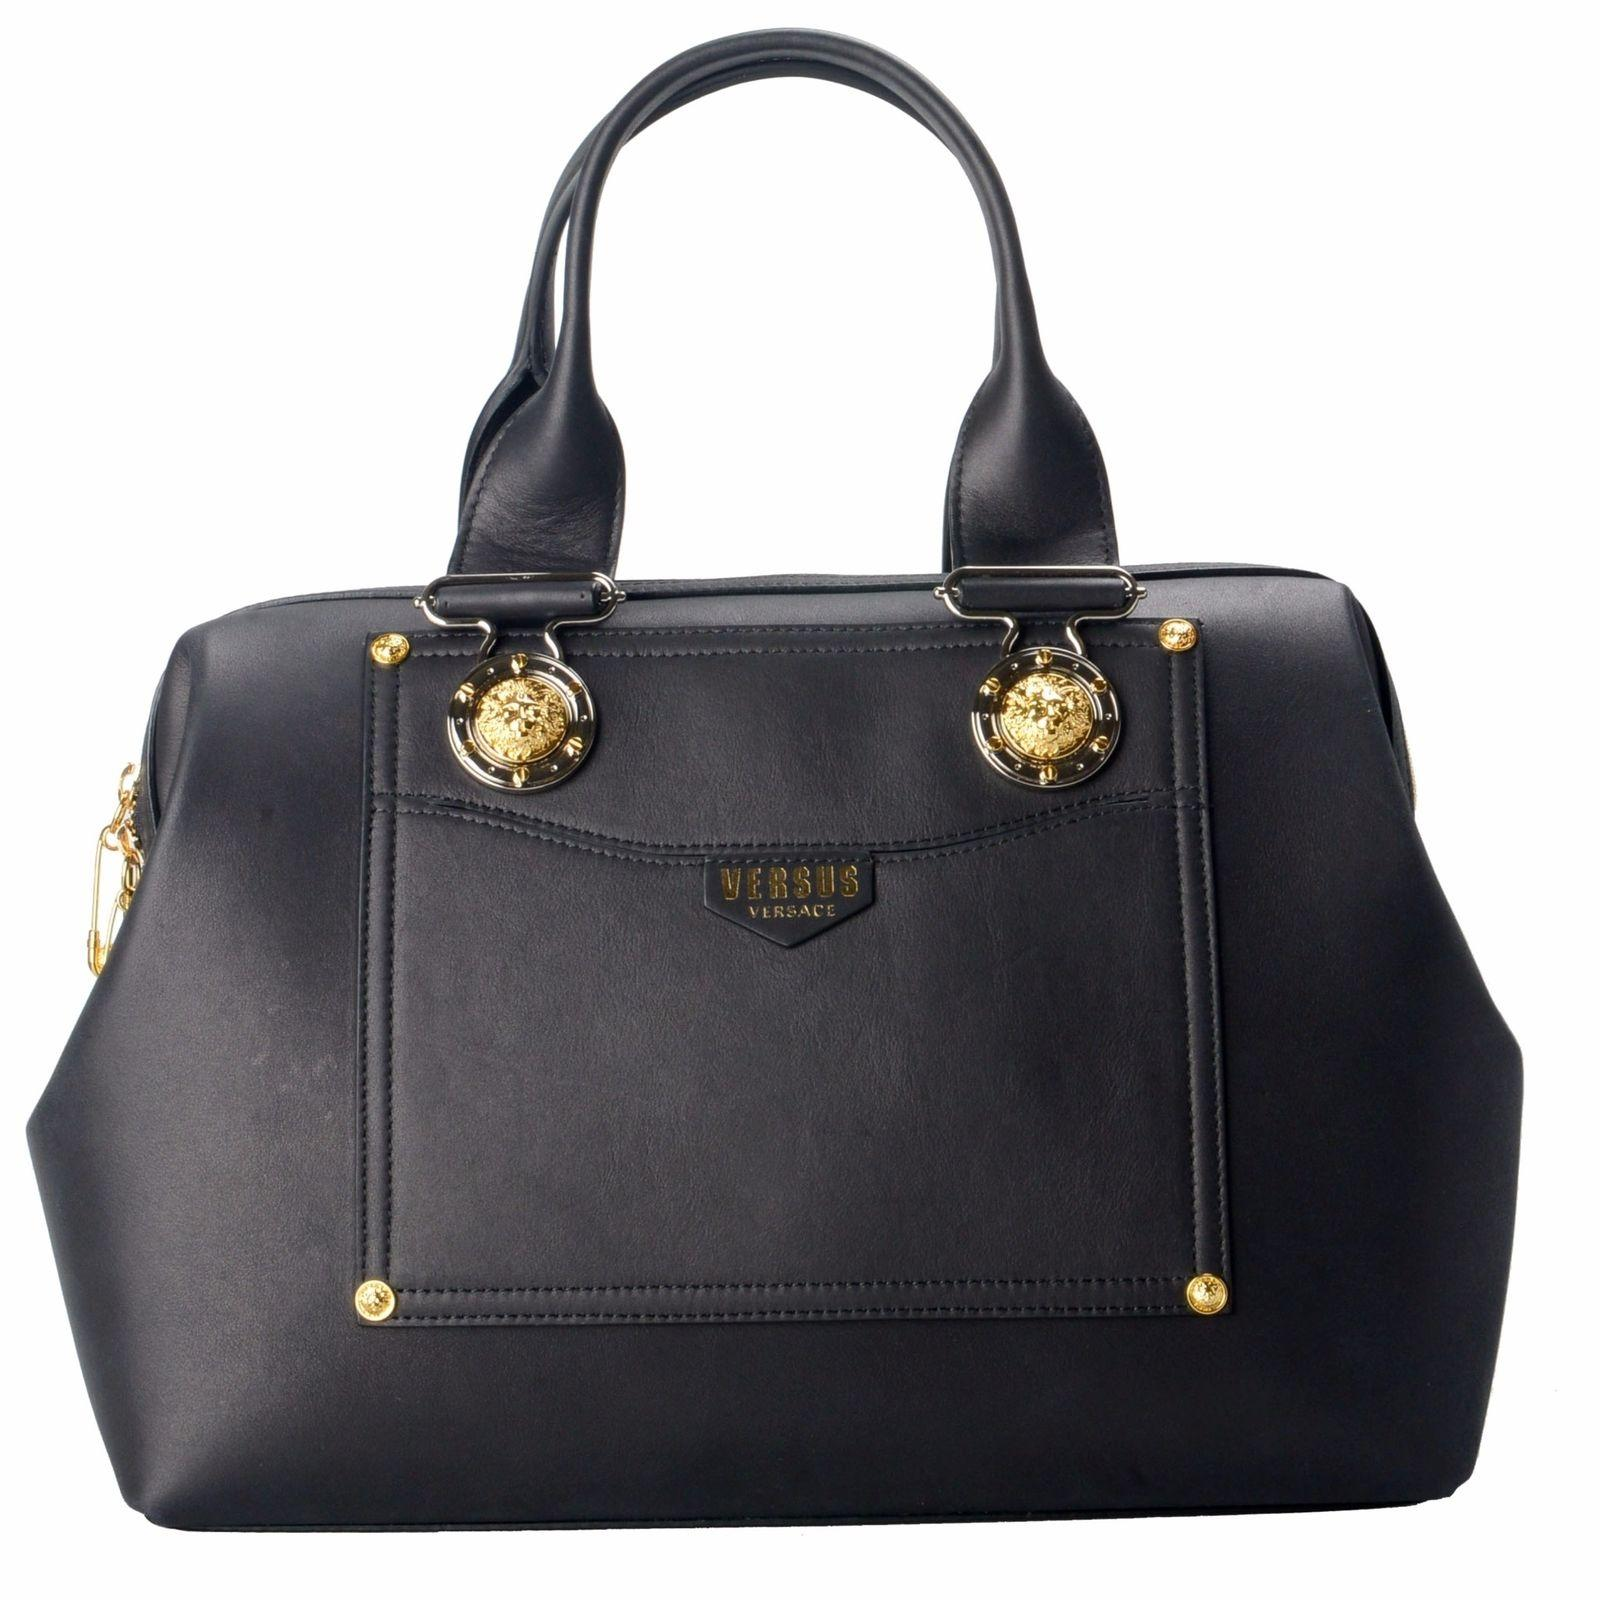 Versace Black leather bag 3X73HEP